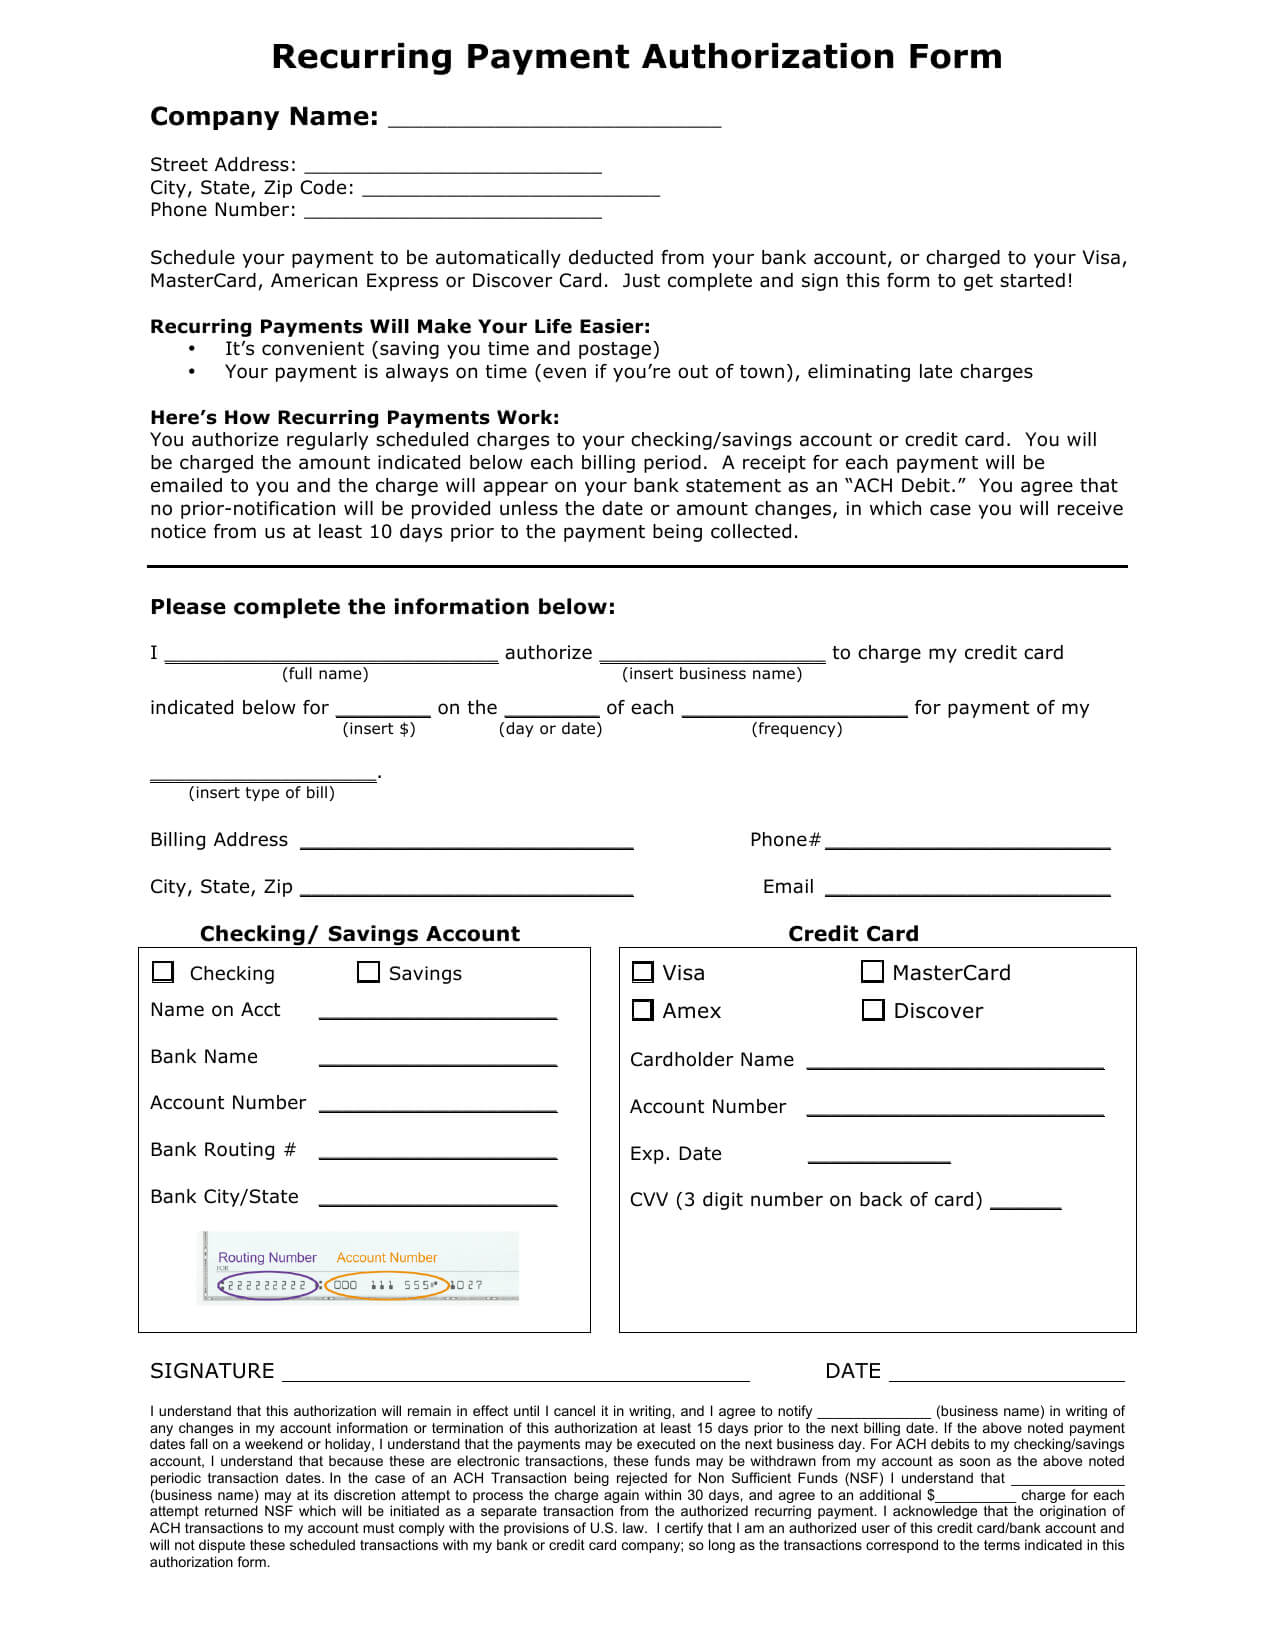 Download Recurring Payment Authorization Form Template Pertaining To Authorization To Charge Credit Card Template